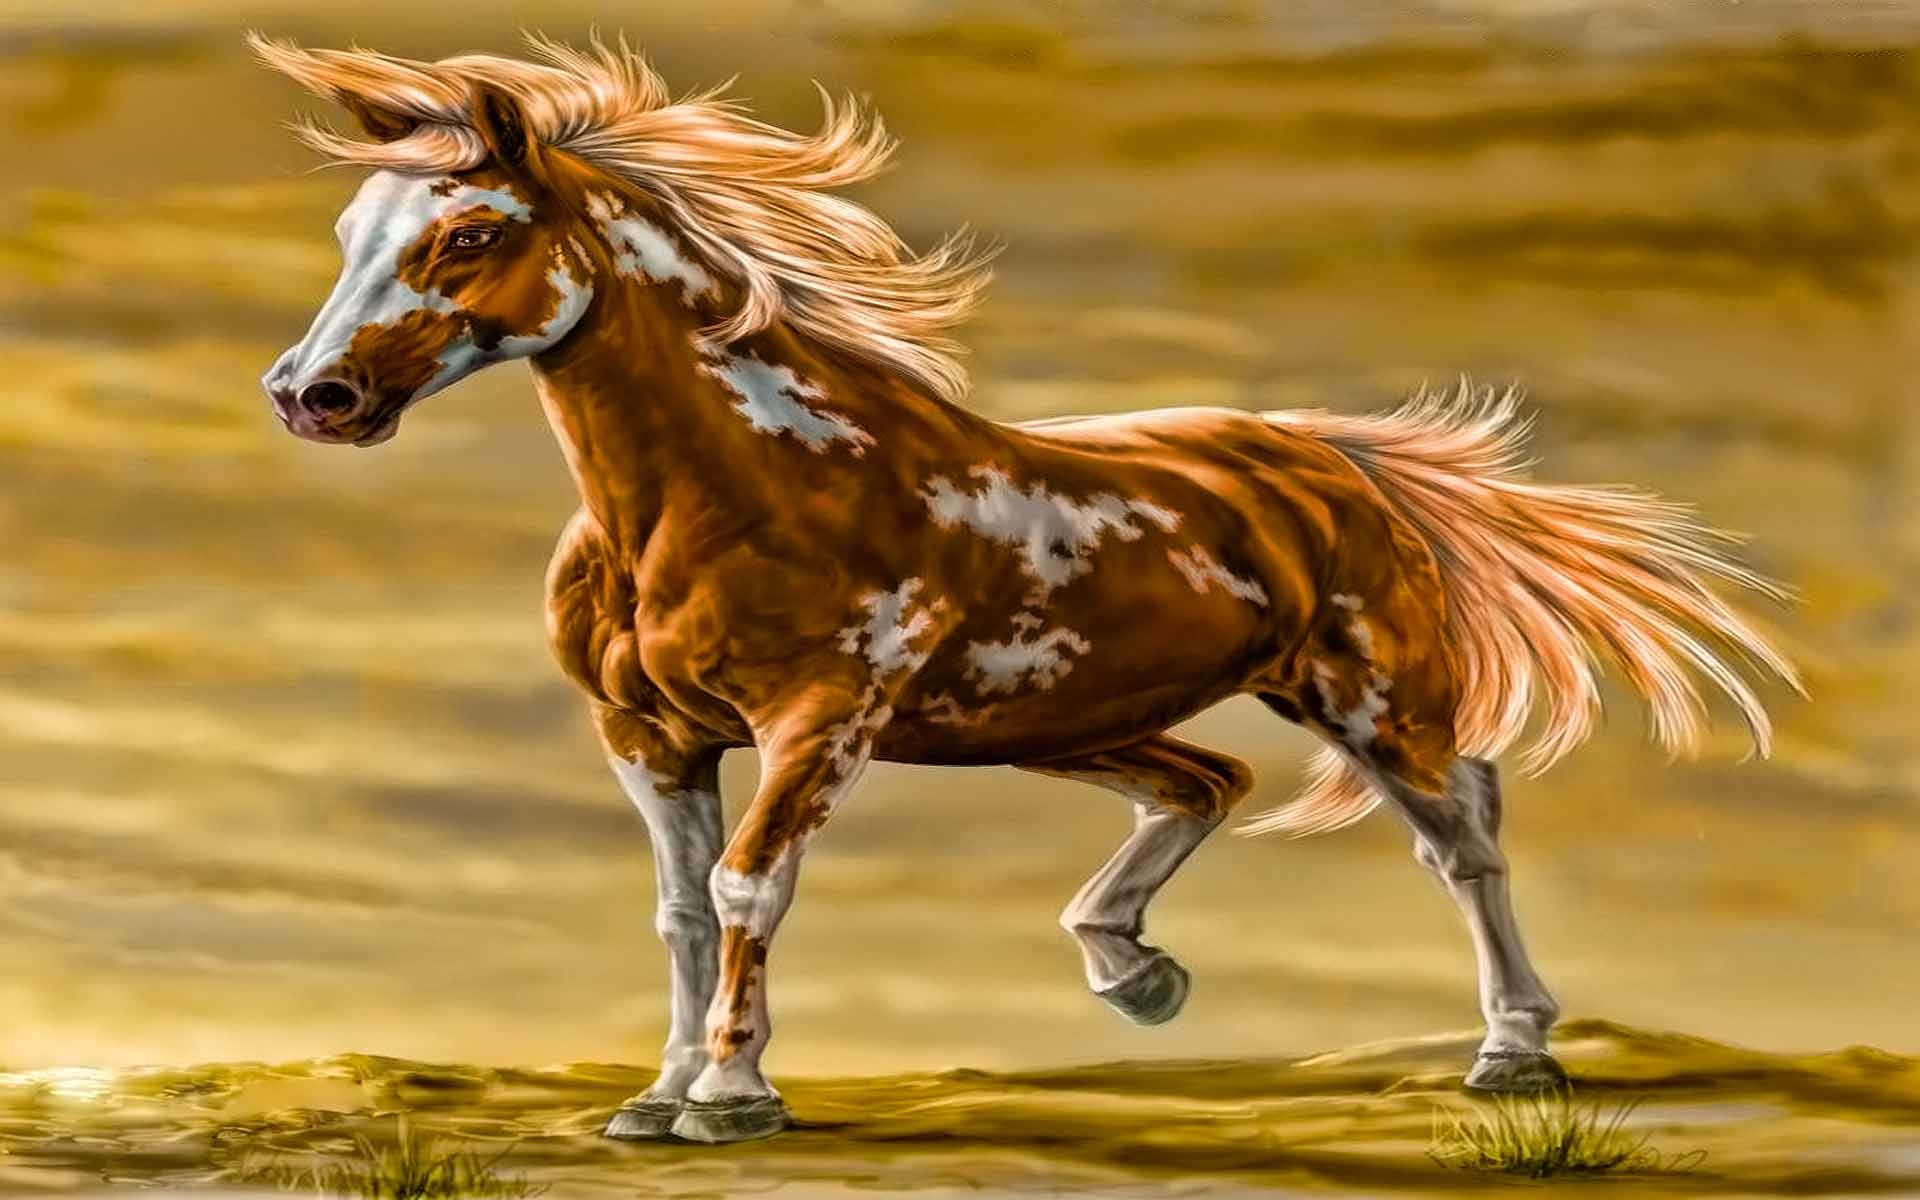 Res: 1920x1200, Paint Horse Wallpaper HD